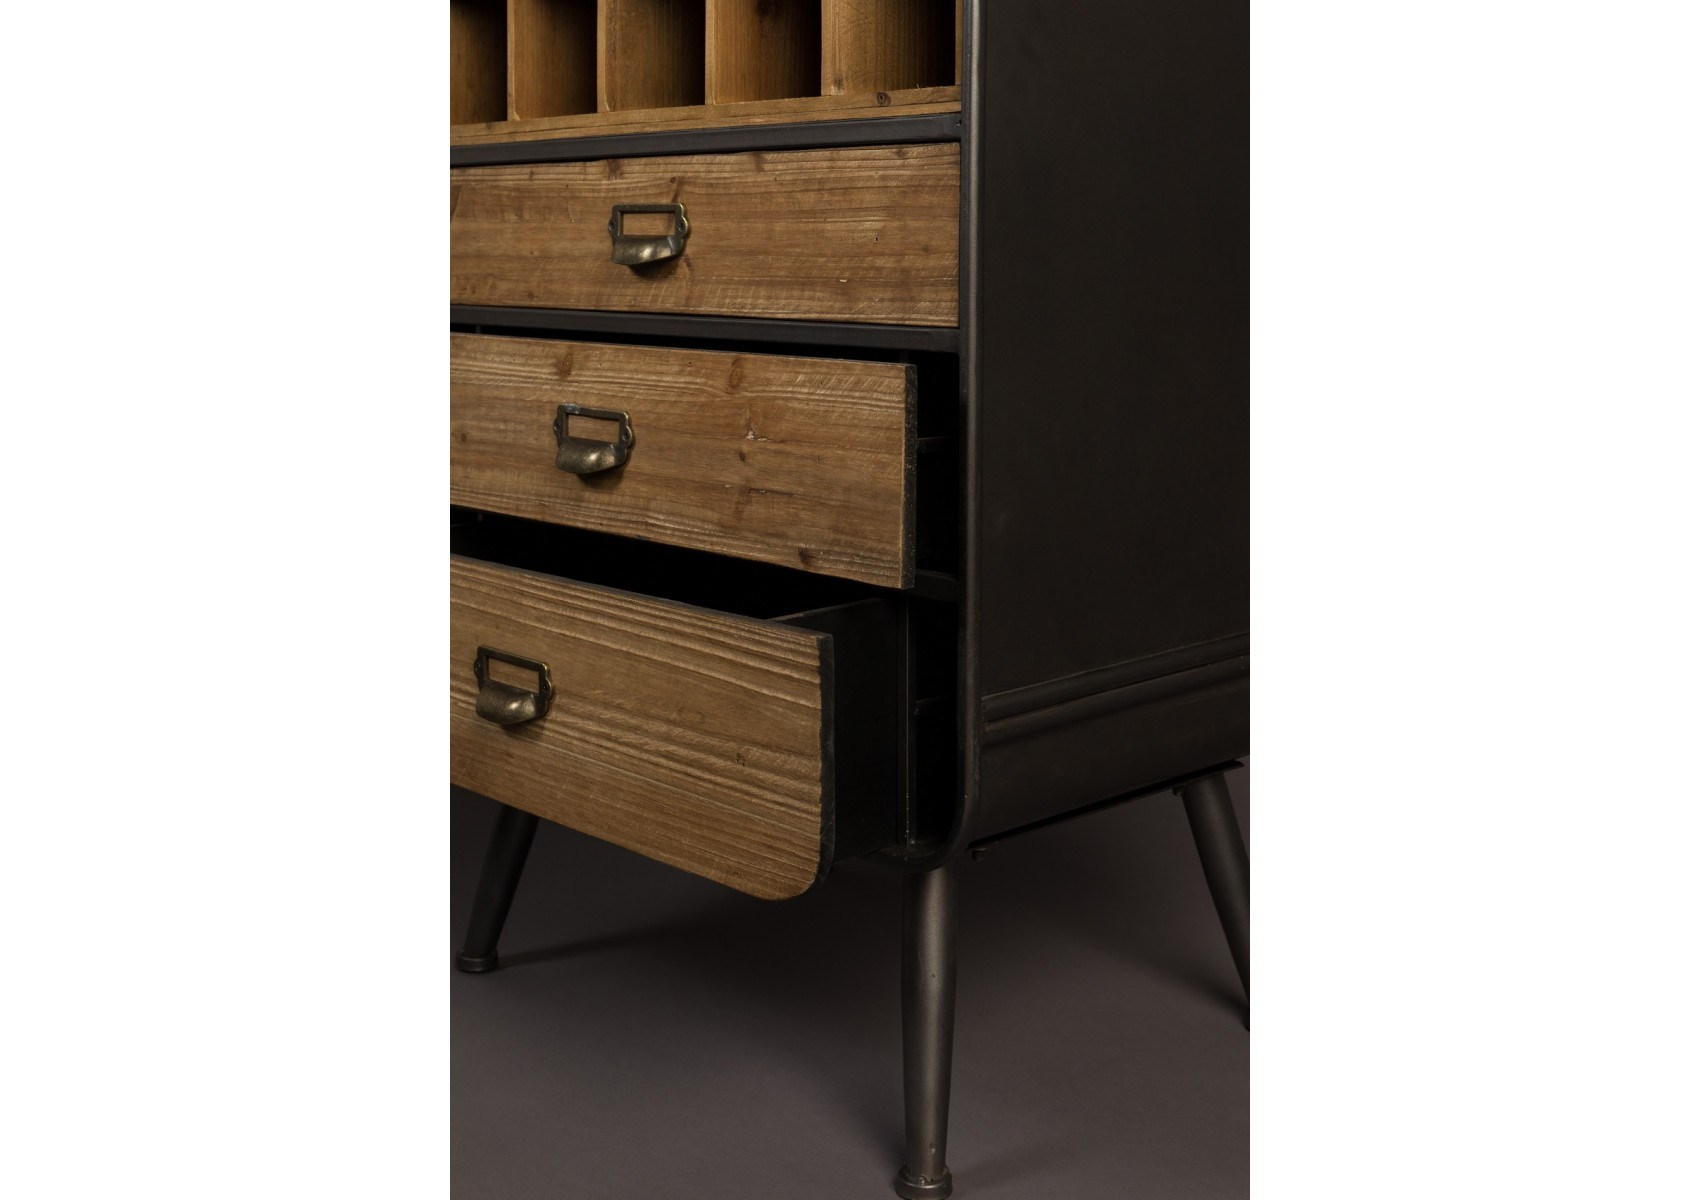 meuble range bouteille beautiful casier with meuble range bouteille fabulous casier bouteille. Black Bedroom Furniture Sets. Home Design Ideas